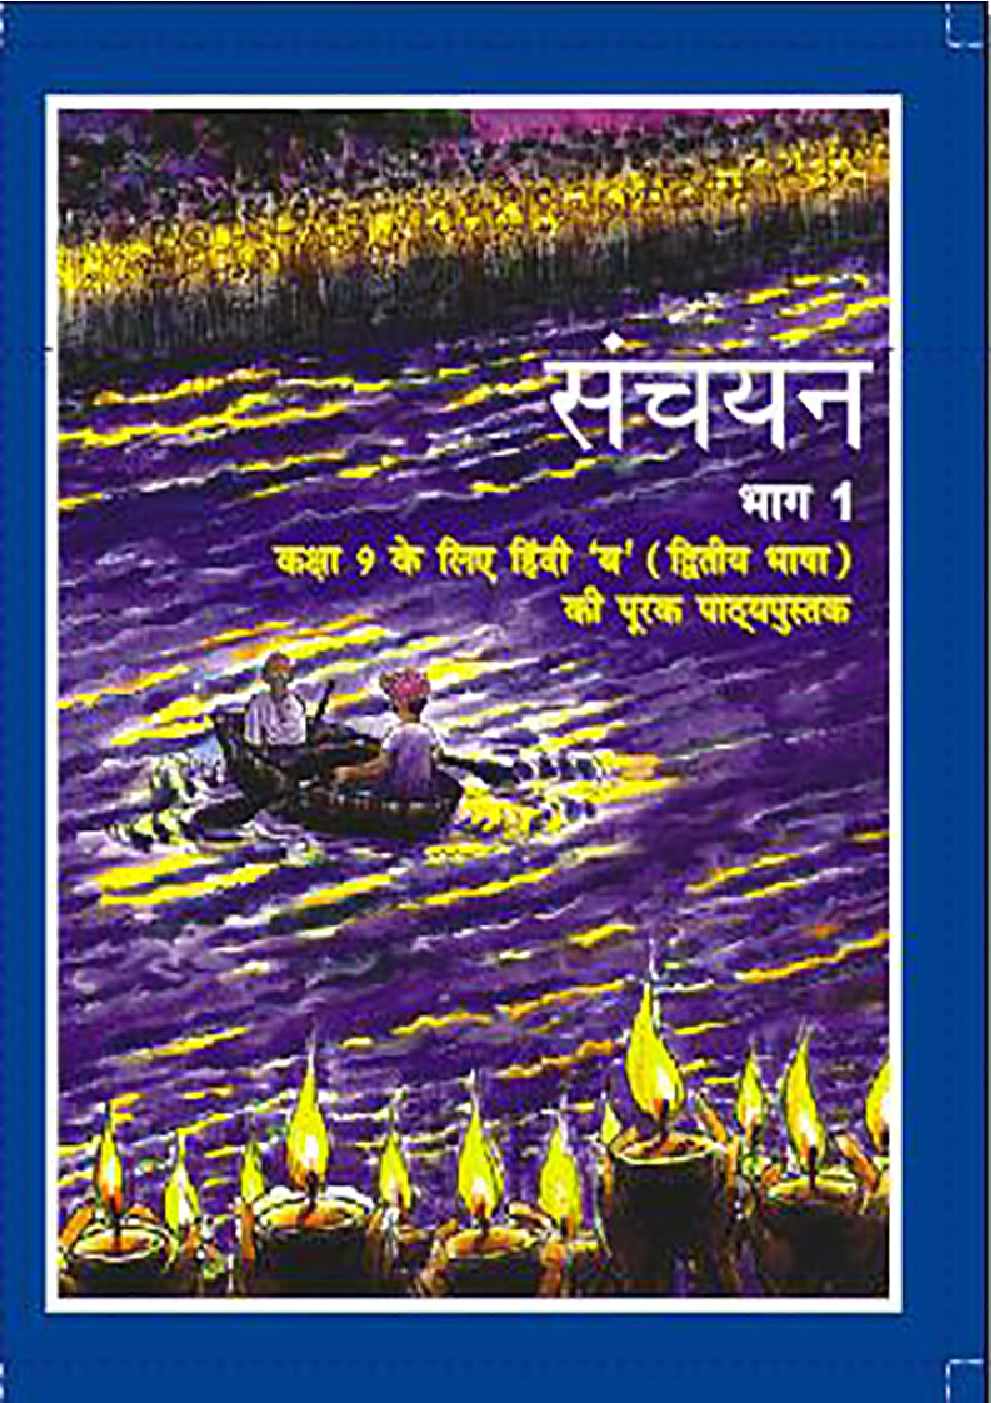 NCERT Hindi Sanchyan Textbook for Class 9th - Page 1